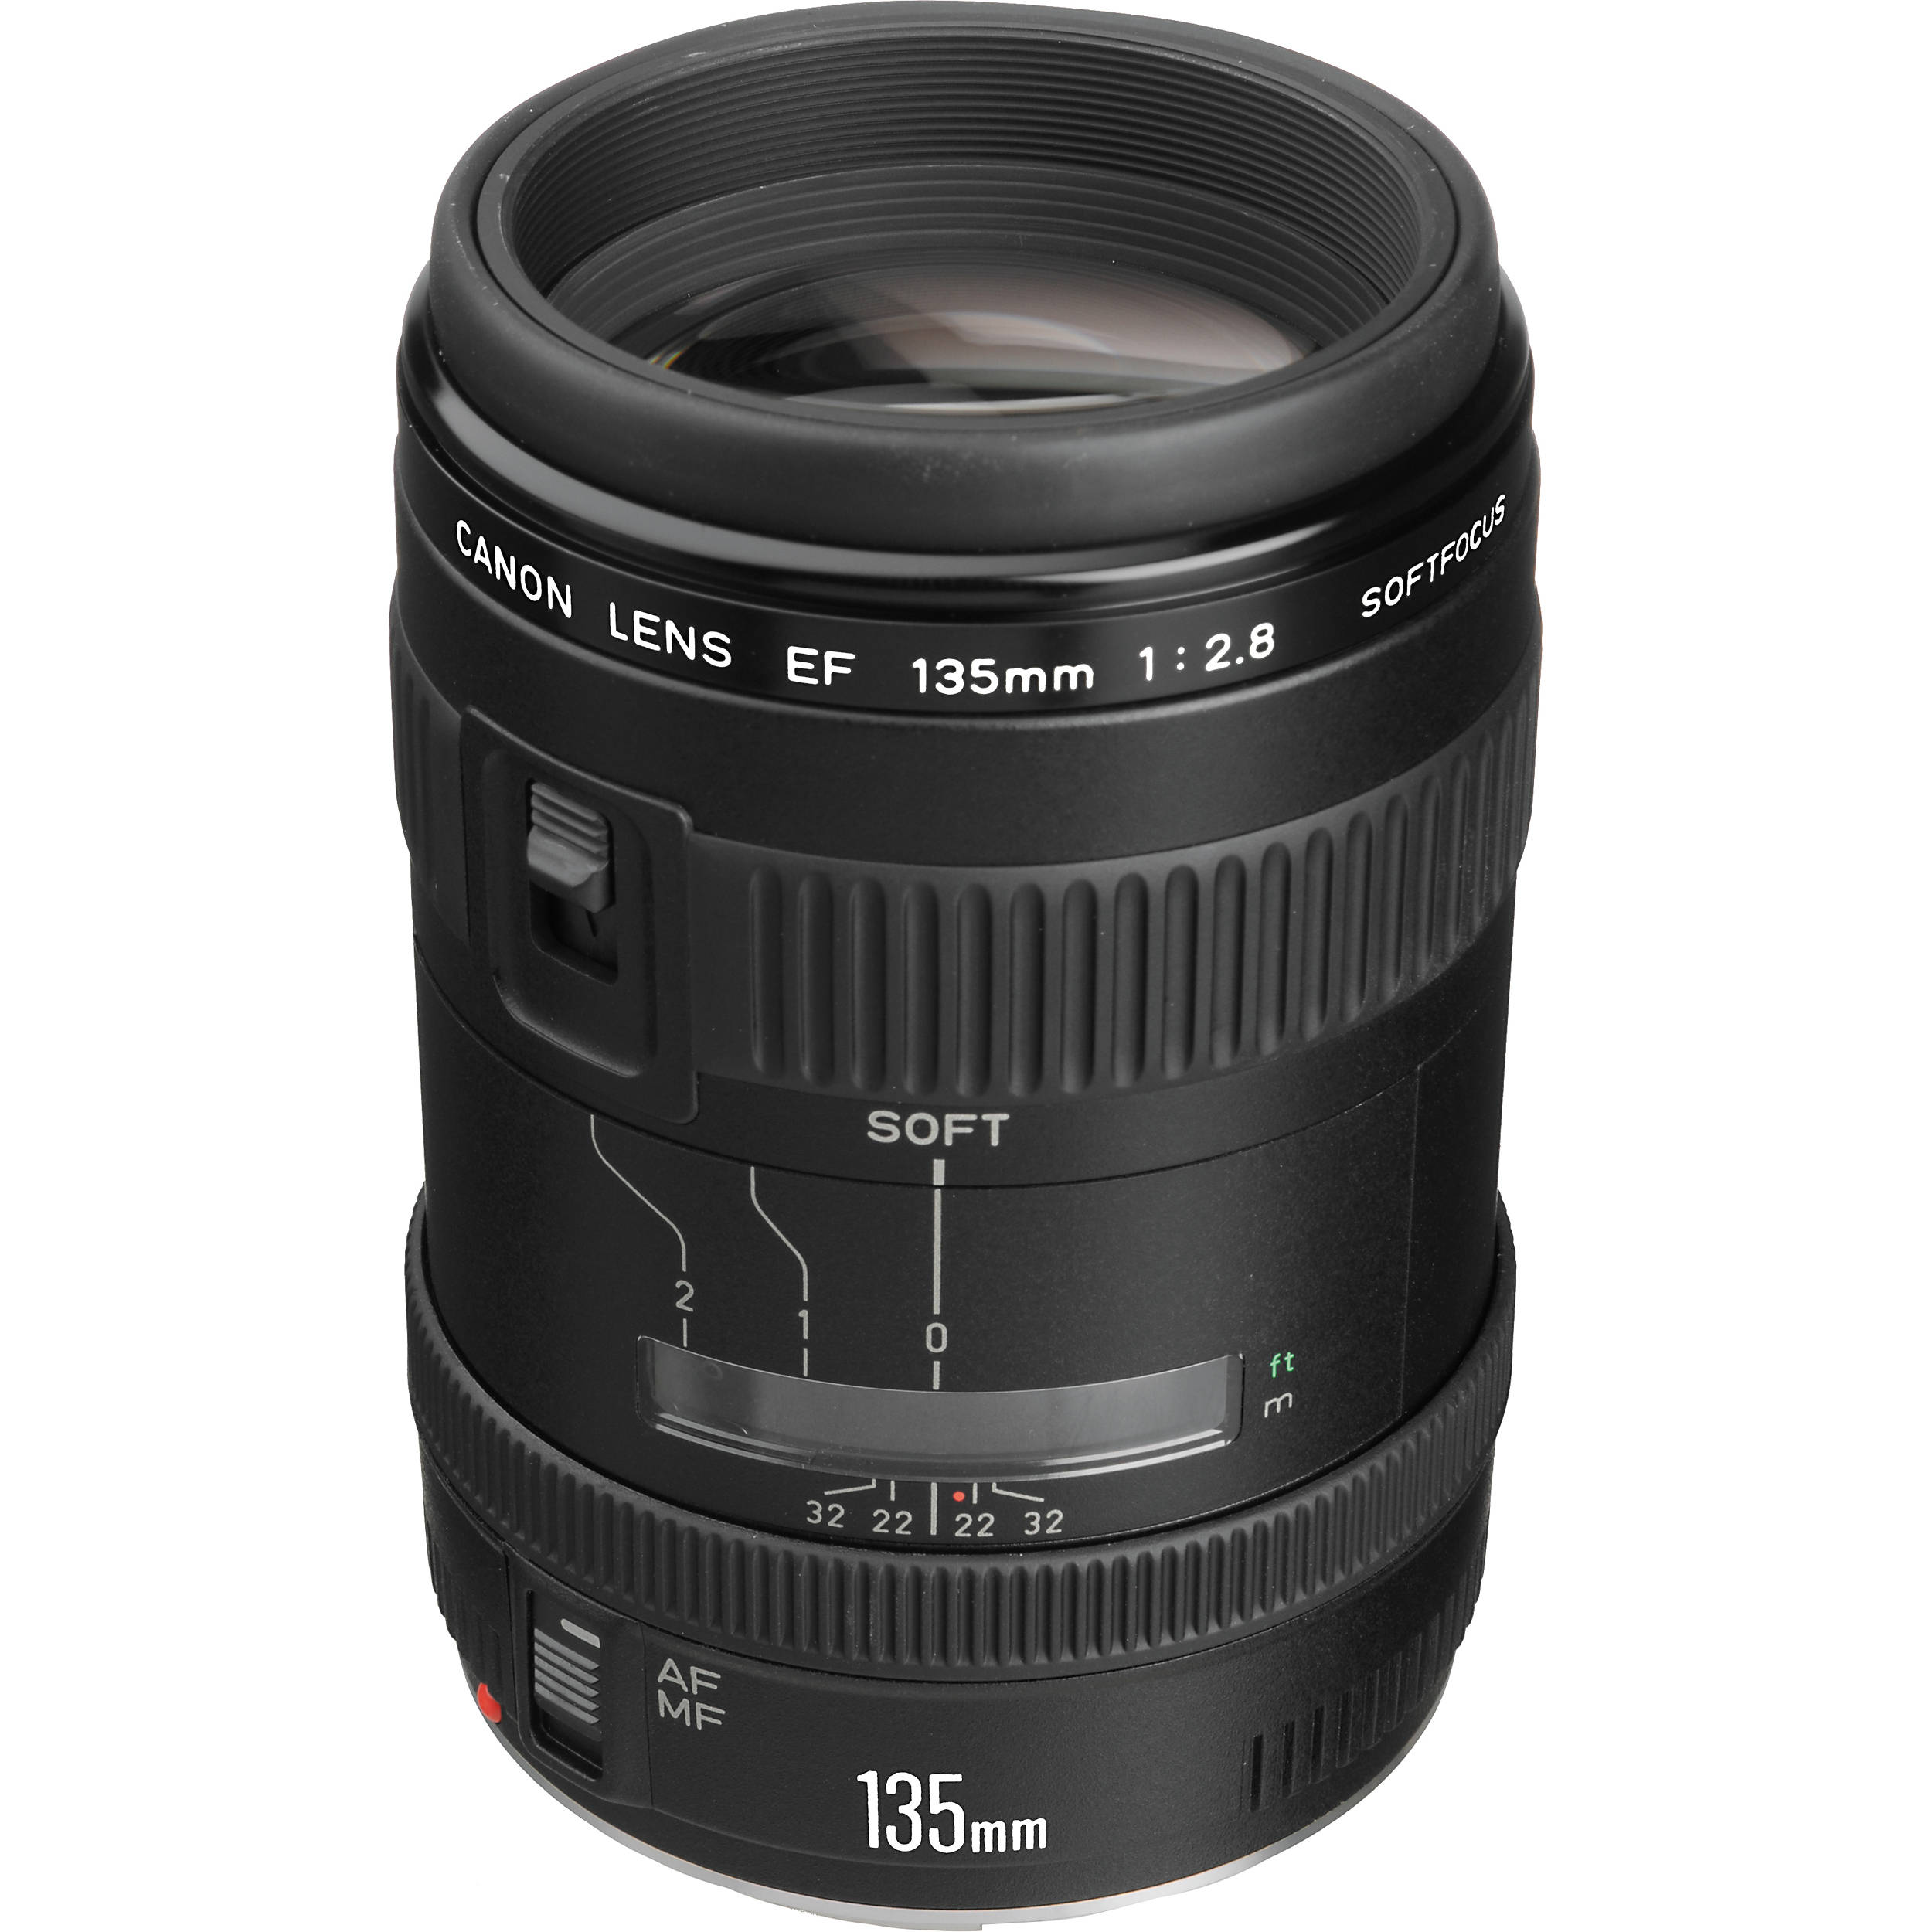 Lens 135mm Canon Canon Telephoto ef 135mm F/2.8